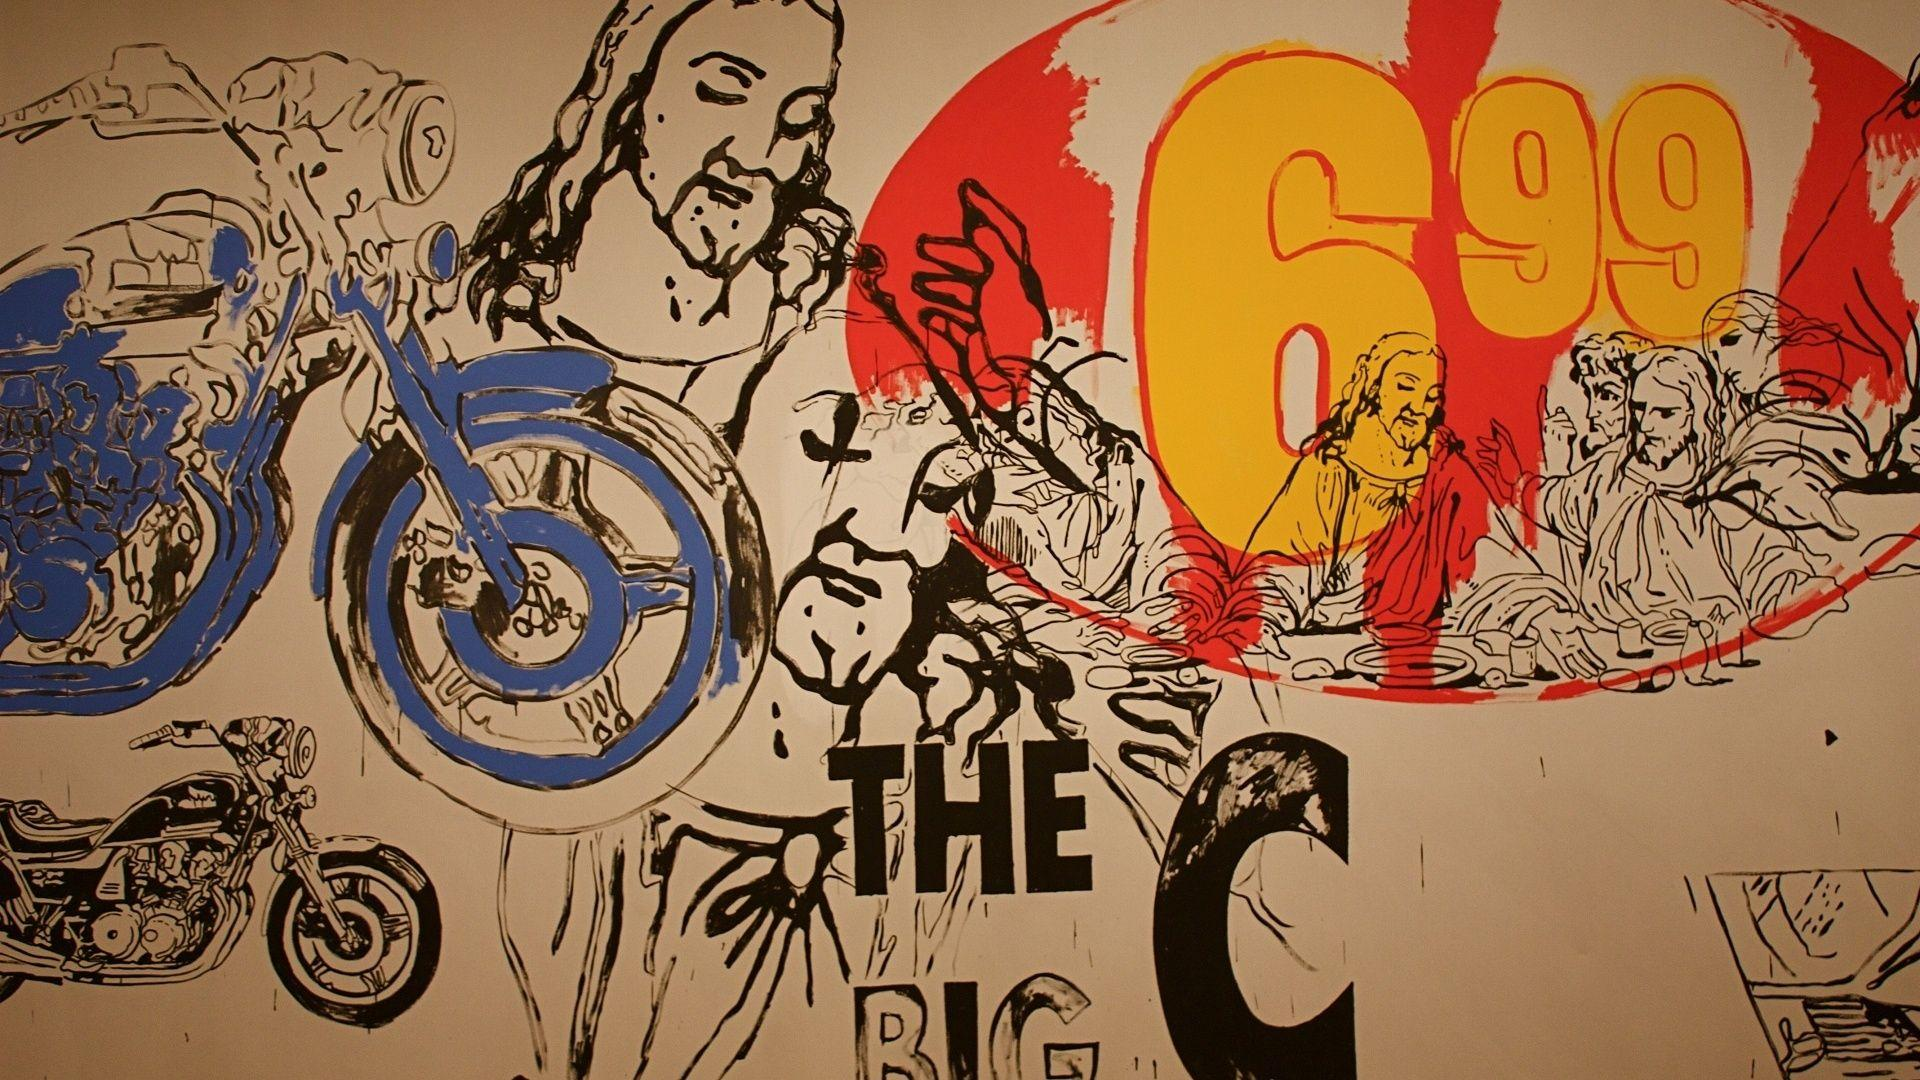 1920x1080 Andy Warhol, Jesus, Bike, Andy Warhol Art Wallpapers and ...